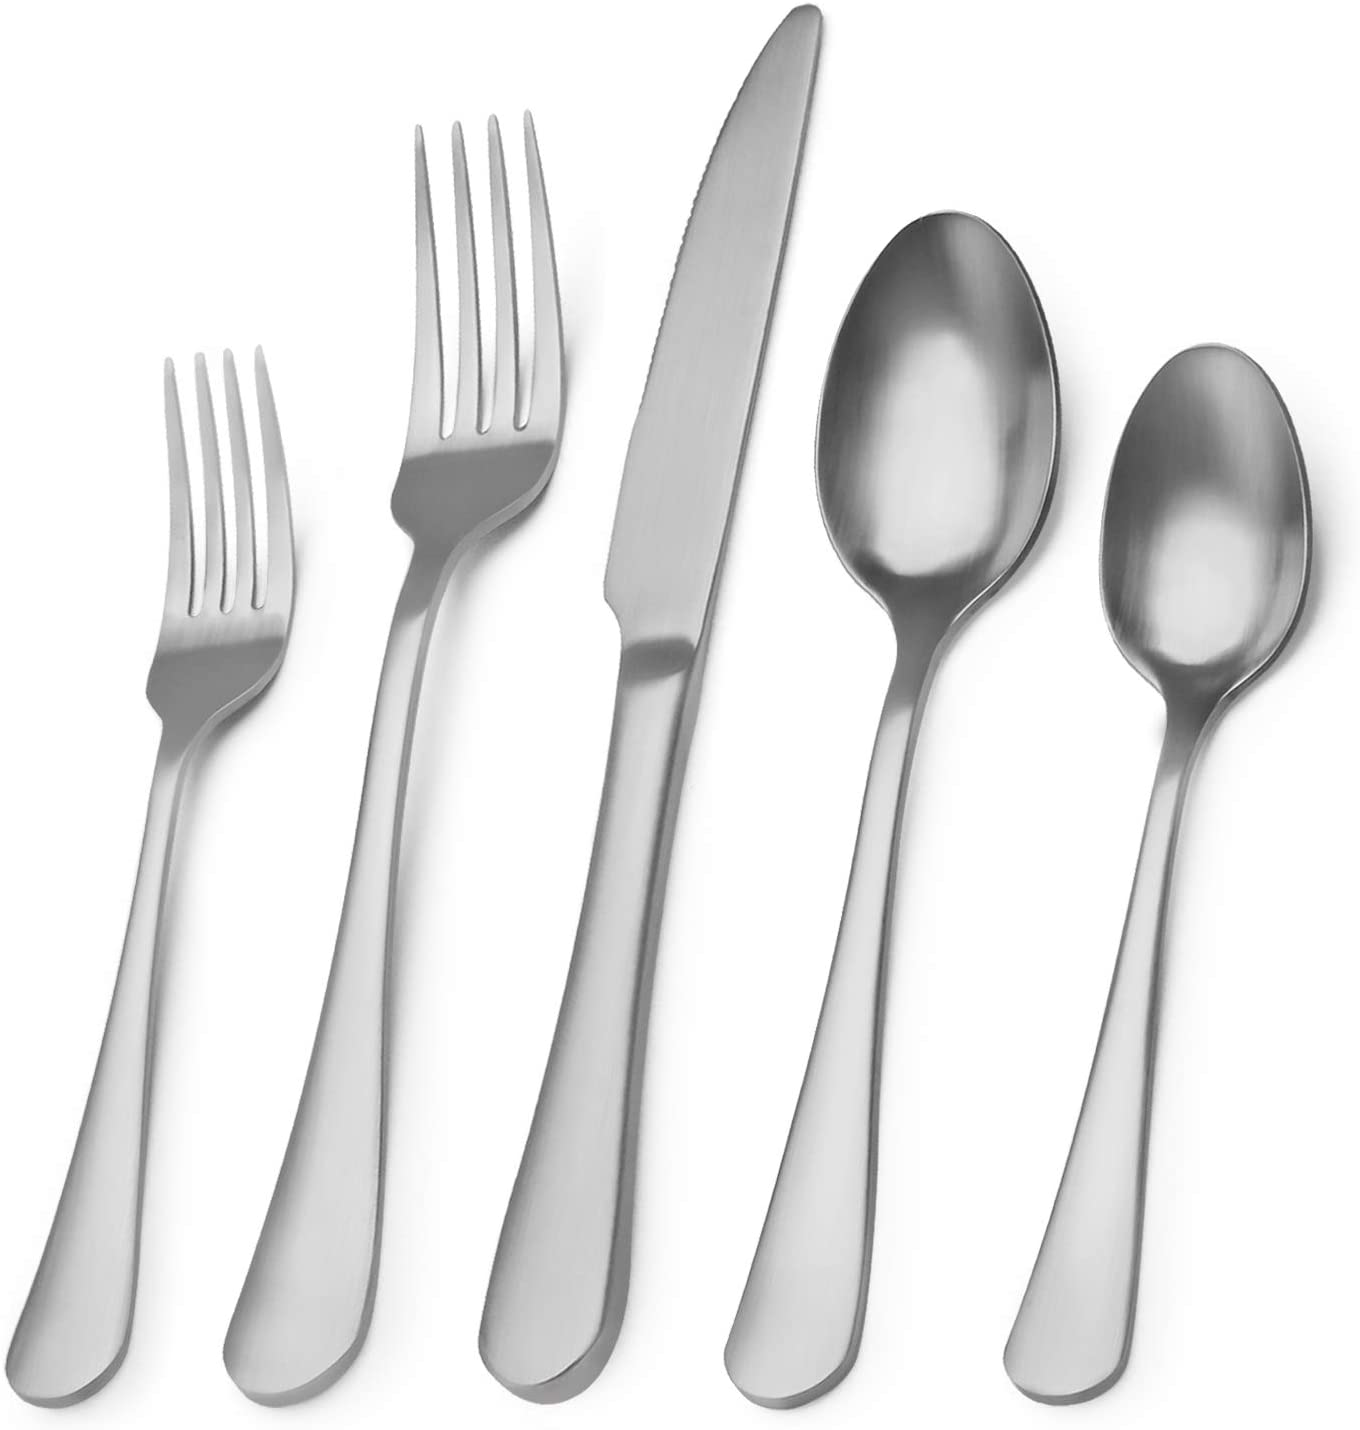 Matte Silverware Set, 20-Piece Stainless Steel Flatware Set,Kitchen Utensil Set Service for 4,Tableware Cutlery Set for Home and Restaurant, Dishwasher Safe